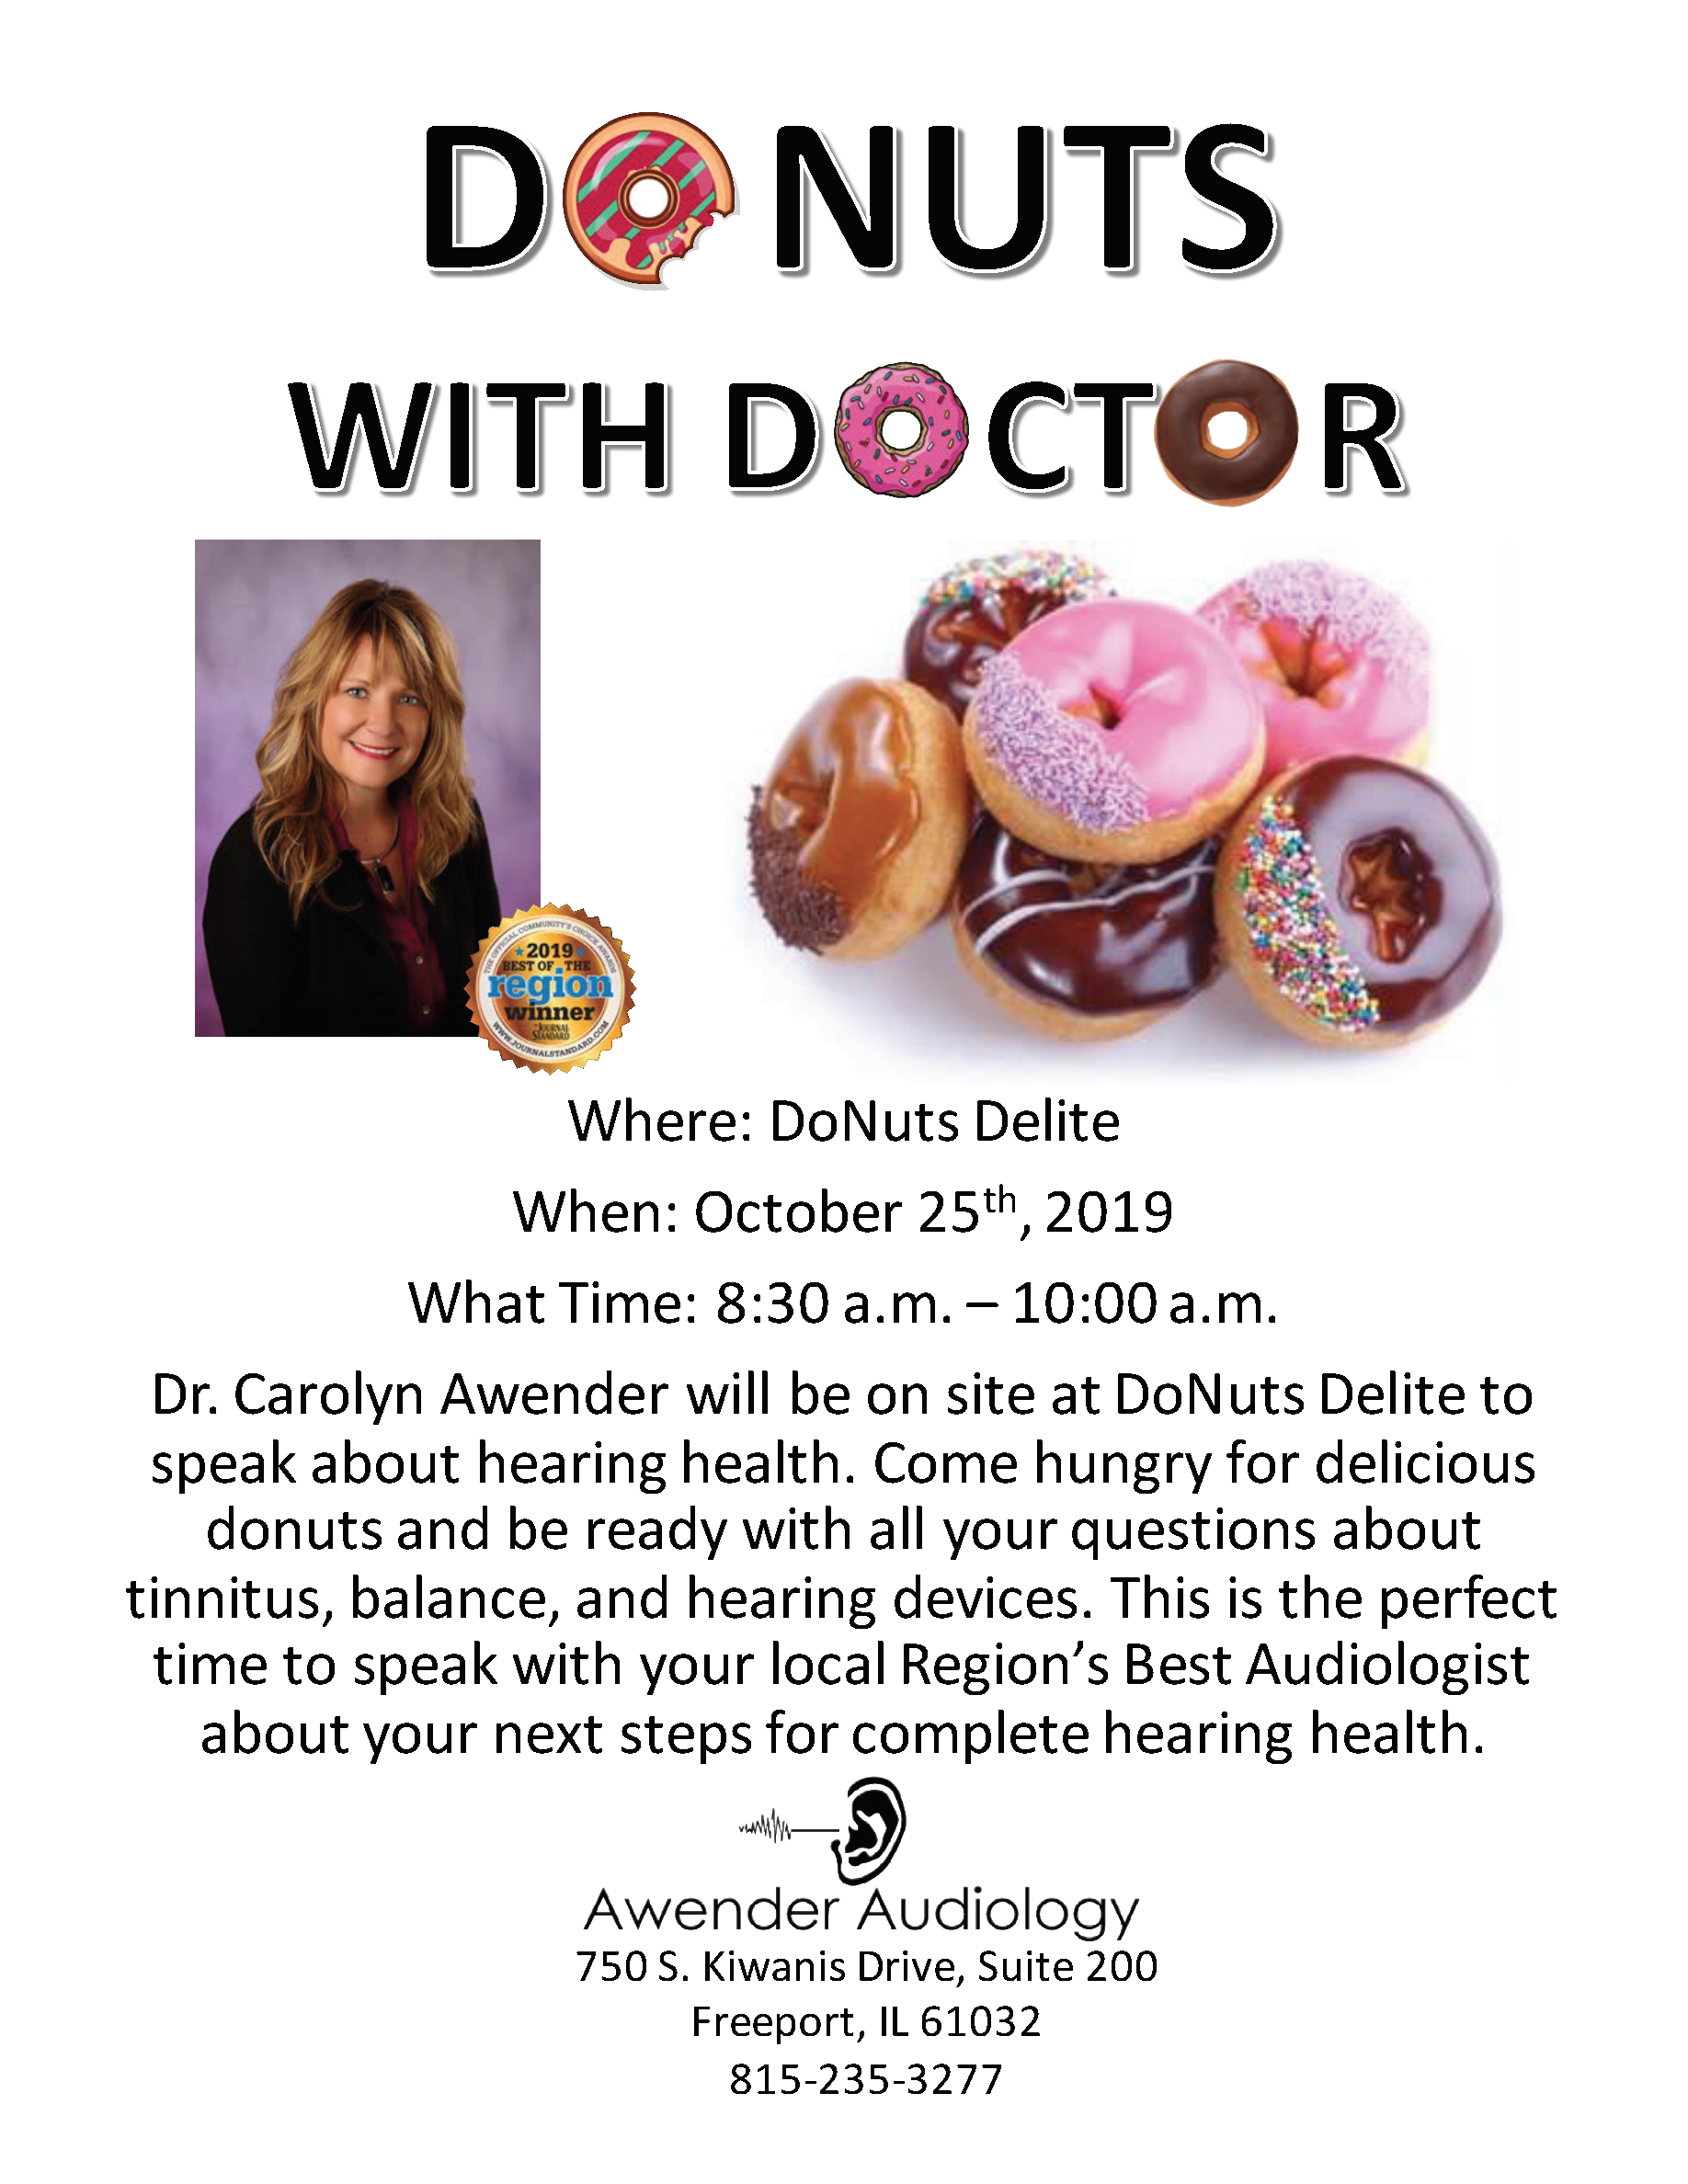 Donut with Doctor Flyer smal.png